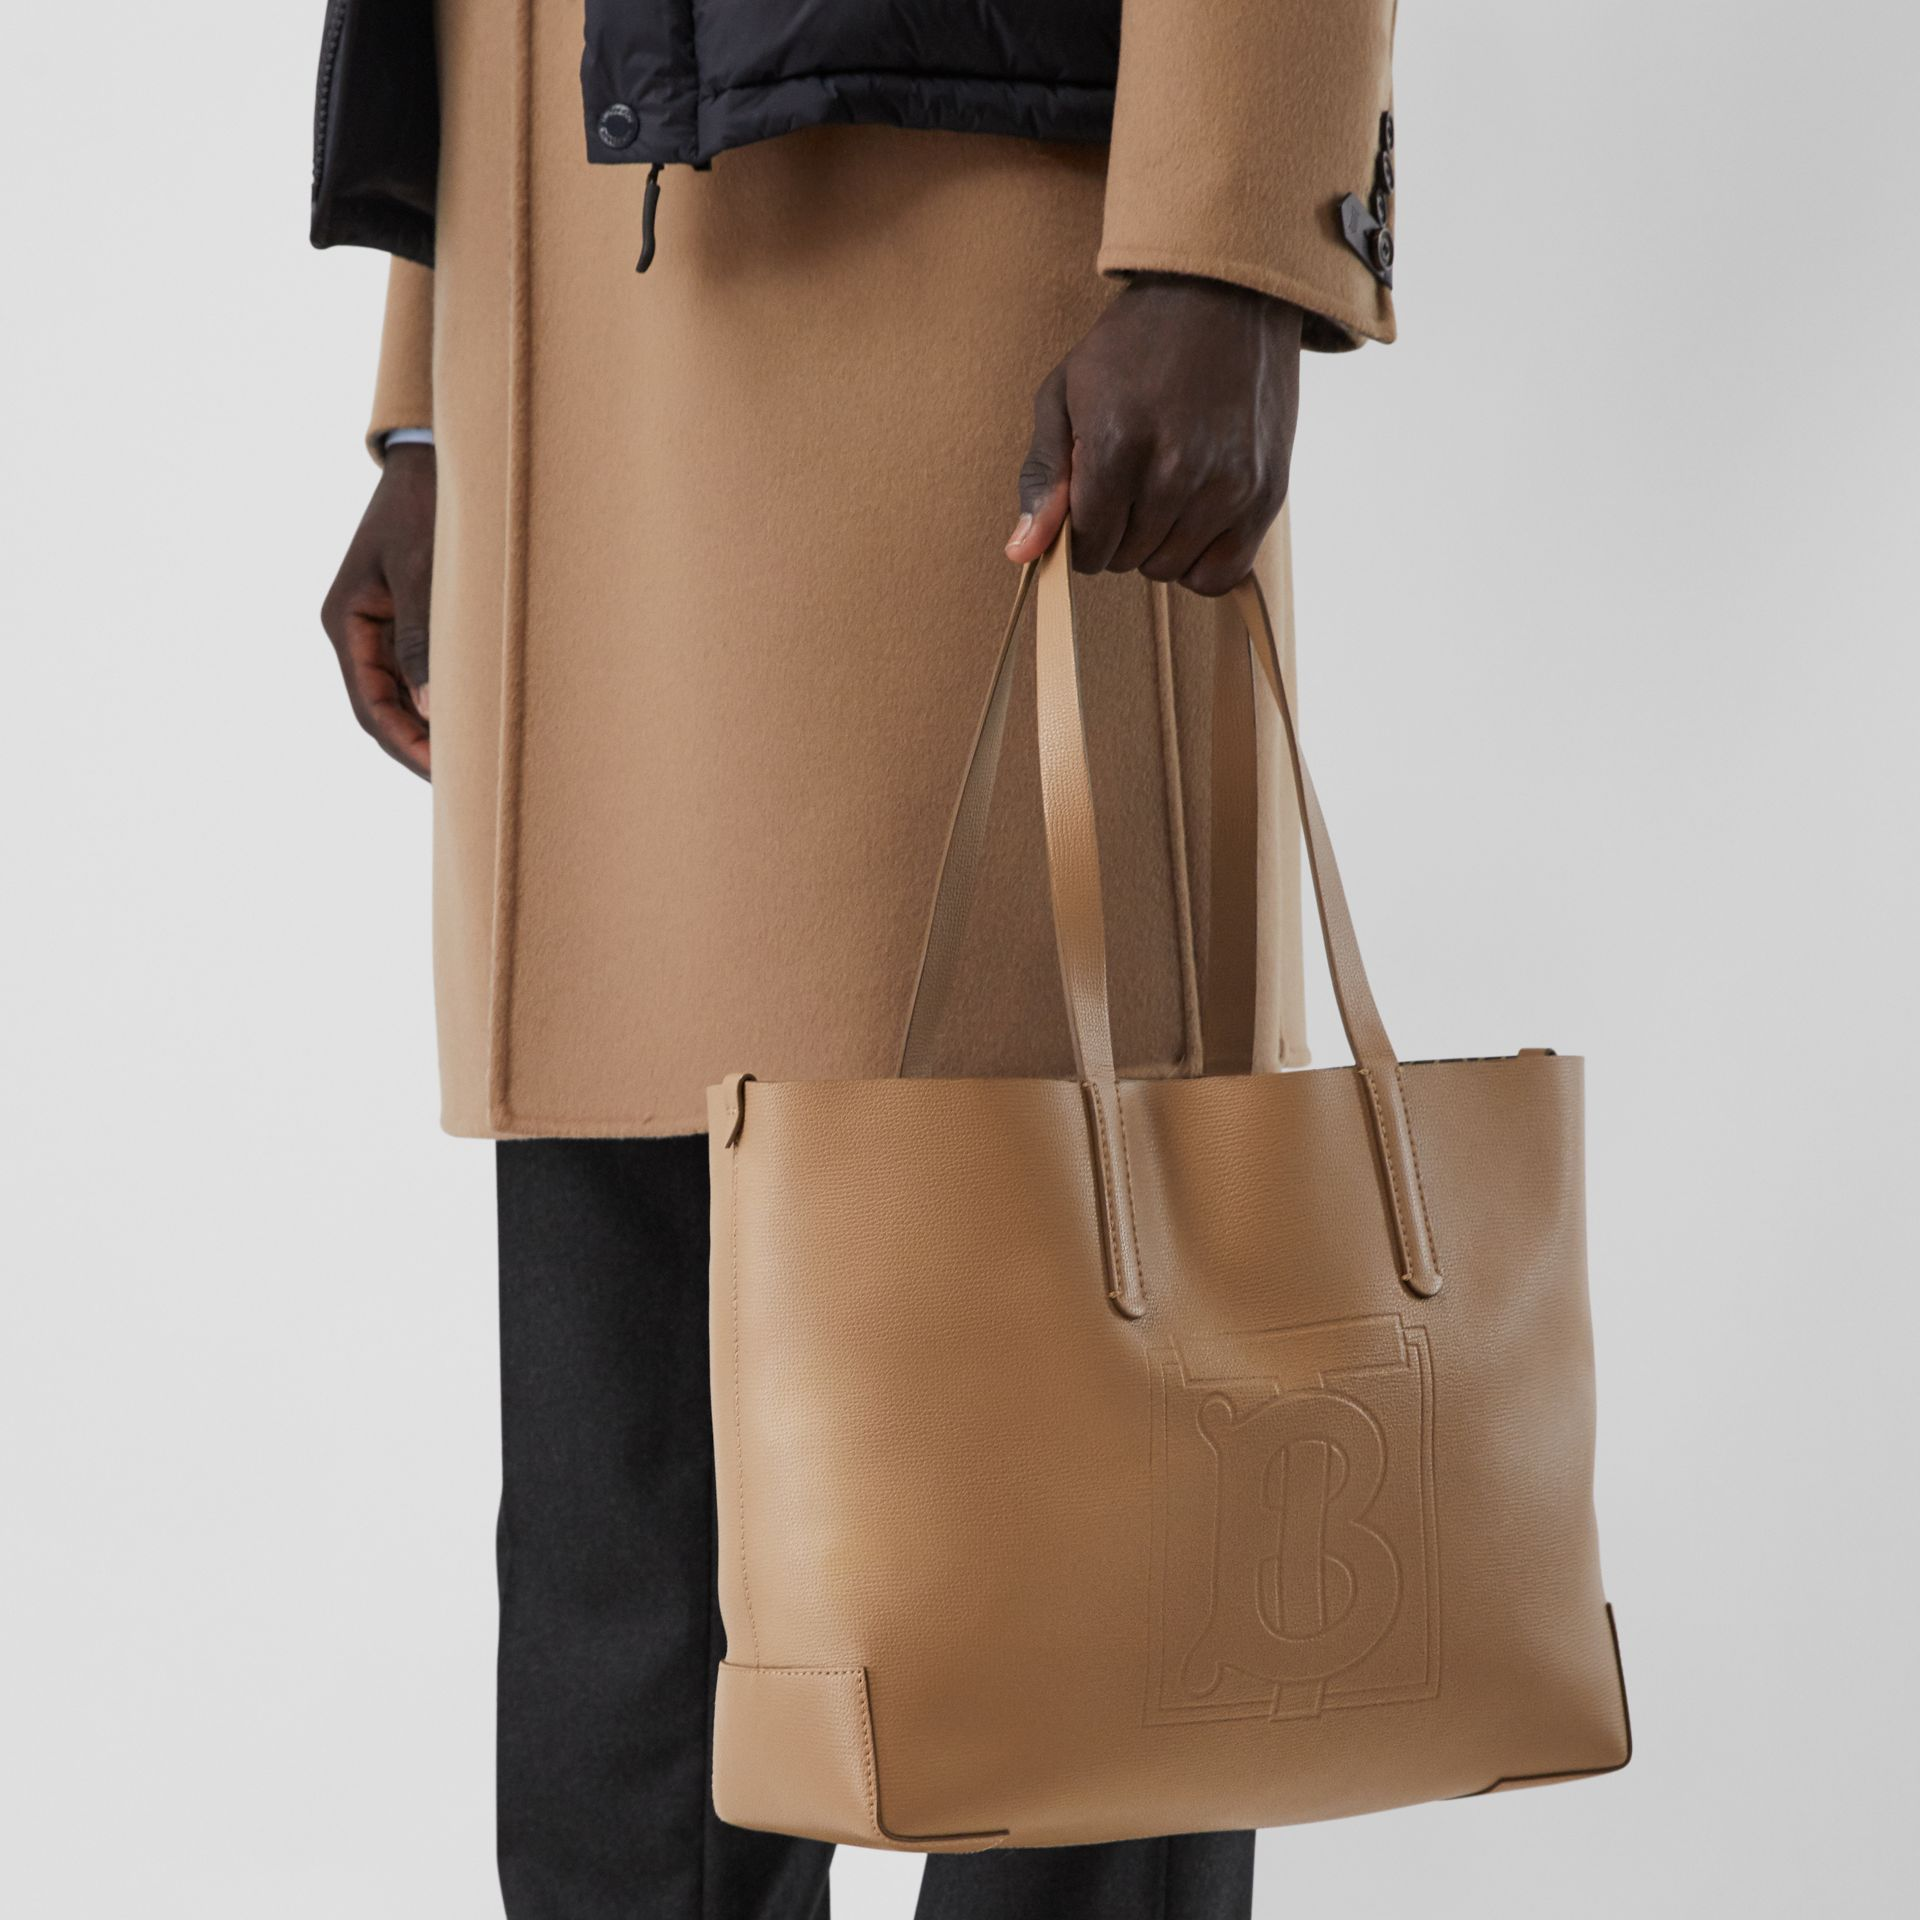 Embossed Monogram Motif Leather Tote in Camel - Women | Burberry - gallery image 3